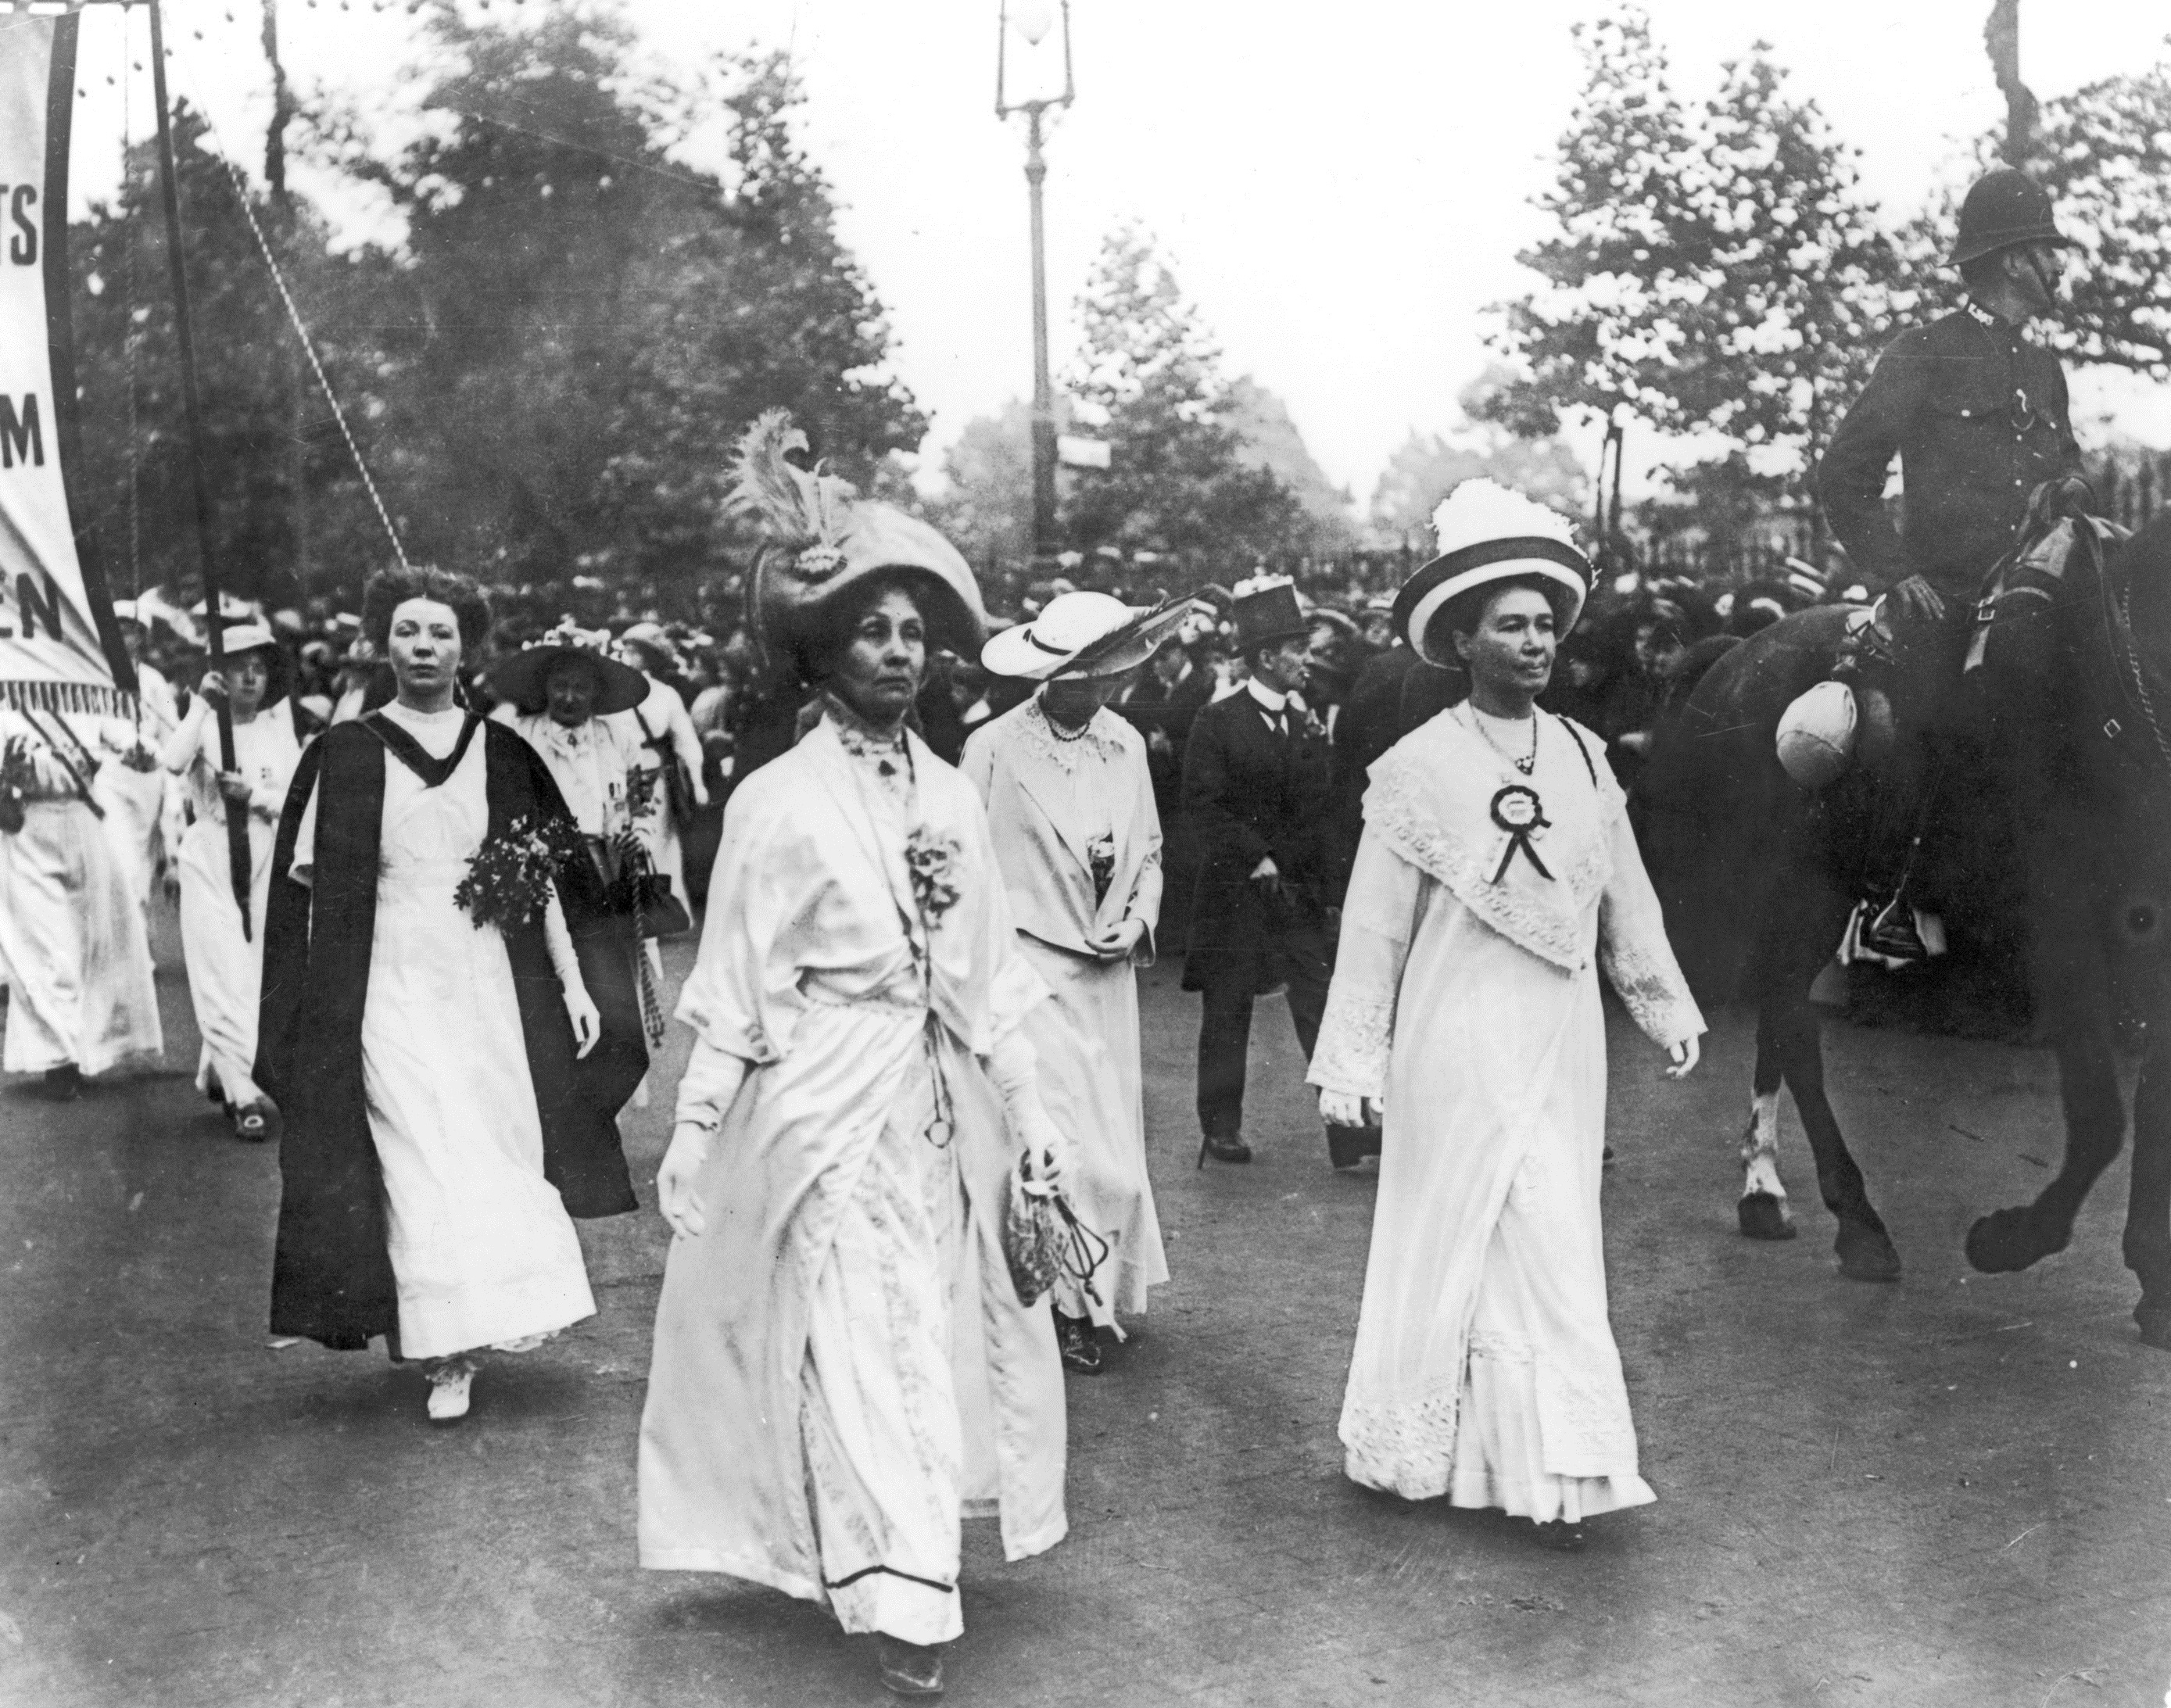 Christabel Pankhurst, Emmeline Pankhurst and Emmeline Pethick-Lawrence on a march © The Women's Library